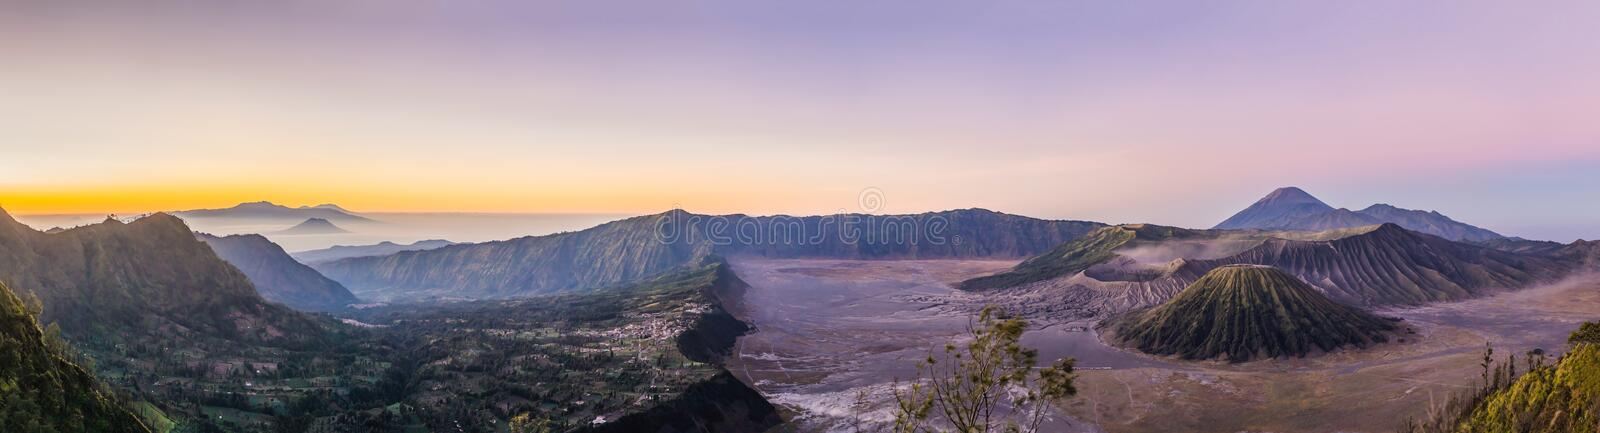 Sunrise at the Bromo Tengger Semeru National Park on the Java Island, Indonesia. View on the Bromo or Gunung Bromo on stock photo